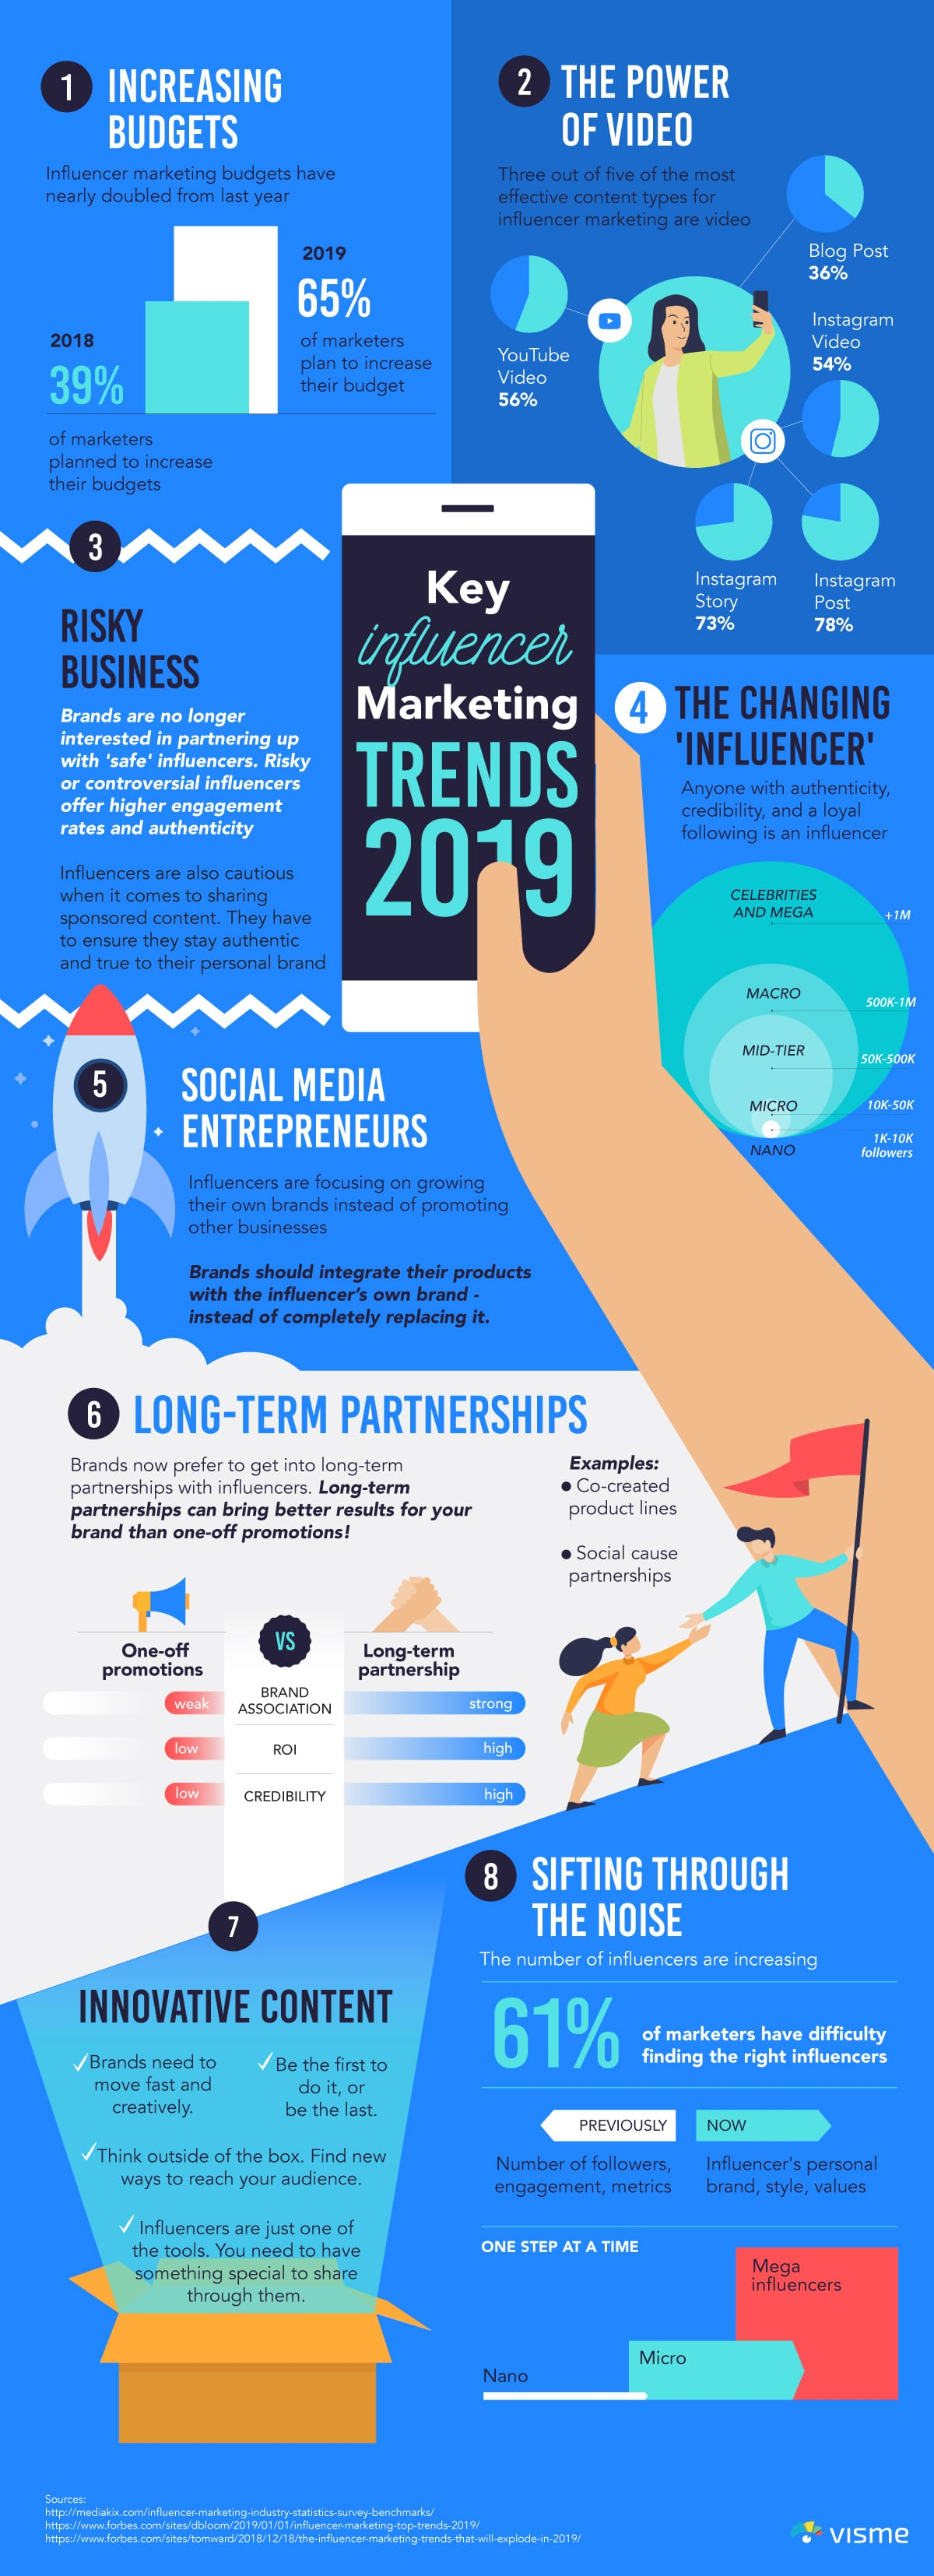 social-media-influencers-influencer-marketing-trends-2019